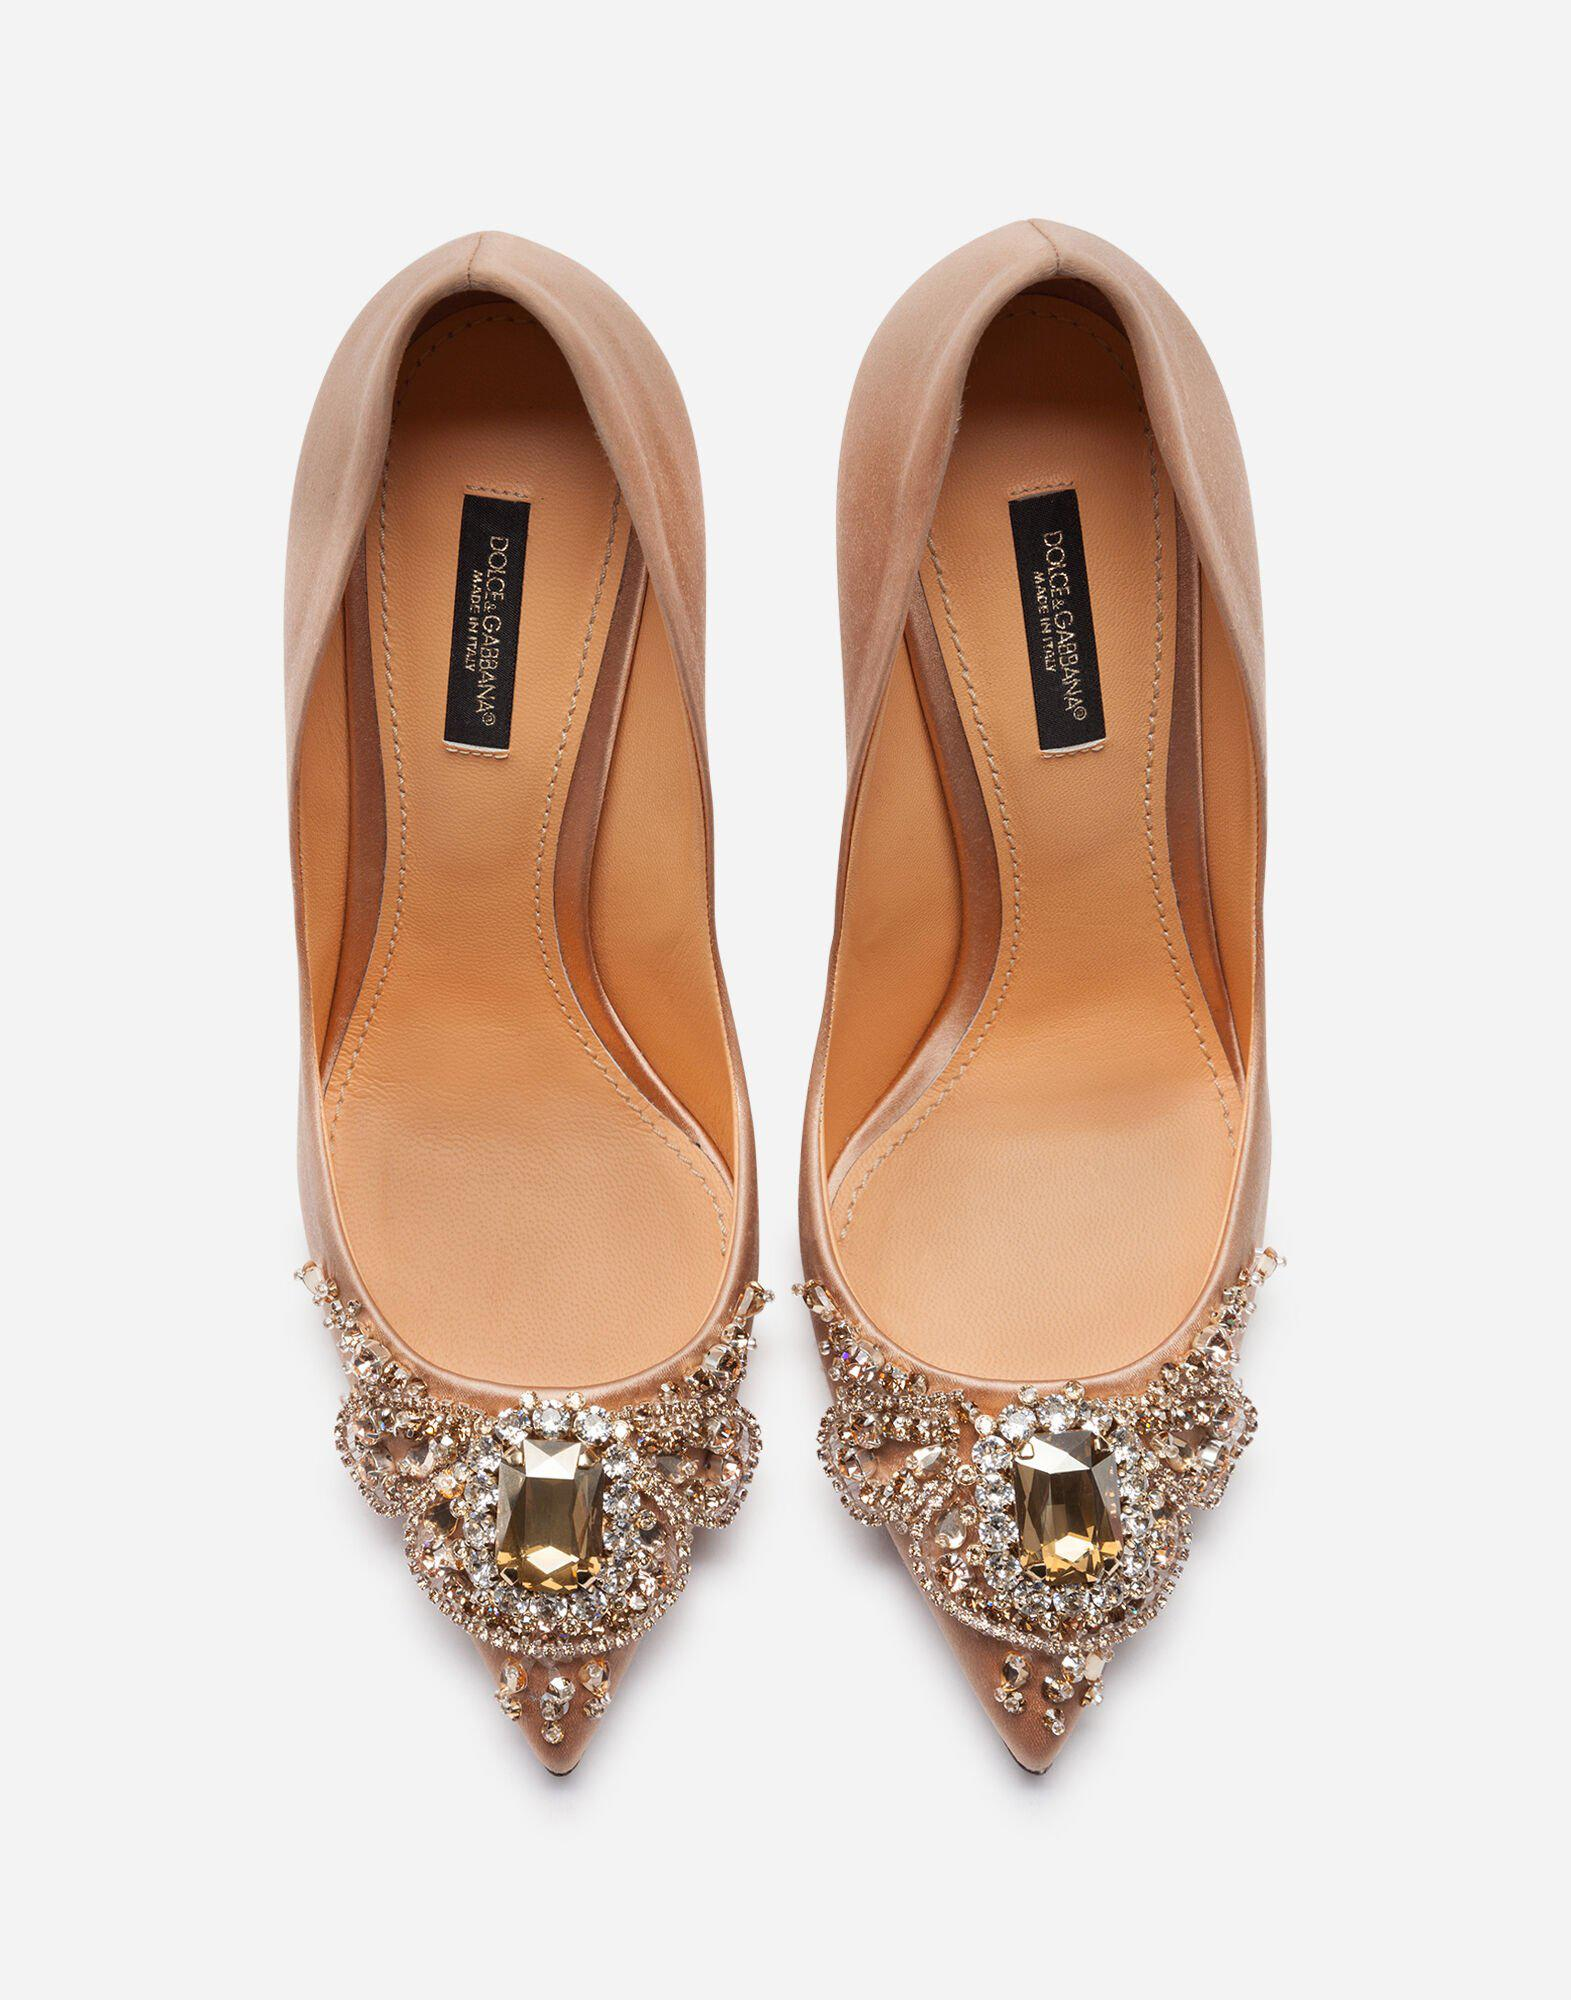 Satin pumps with bejeweled embellishment 3